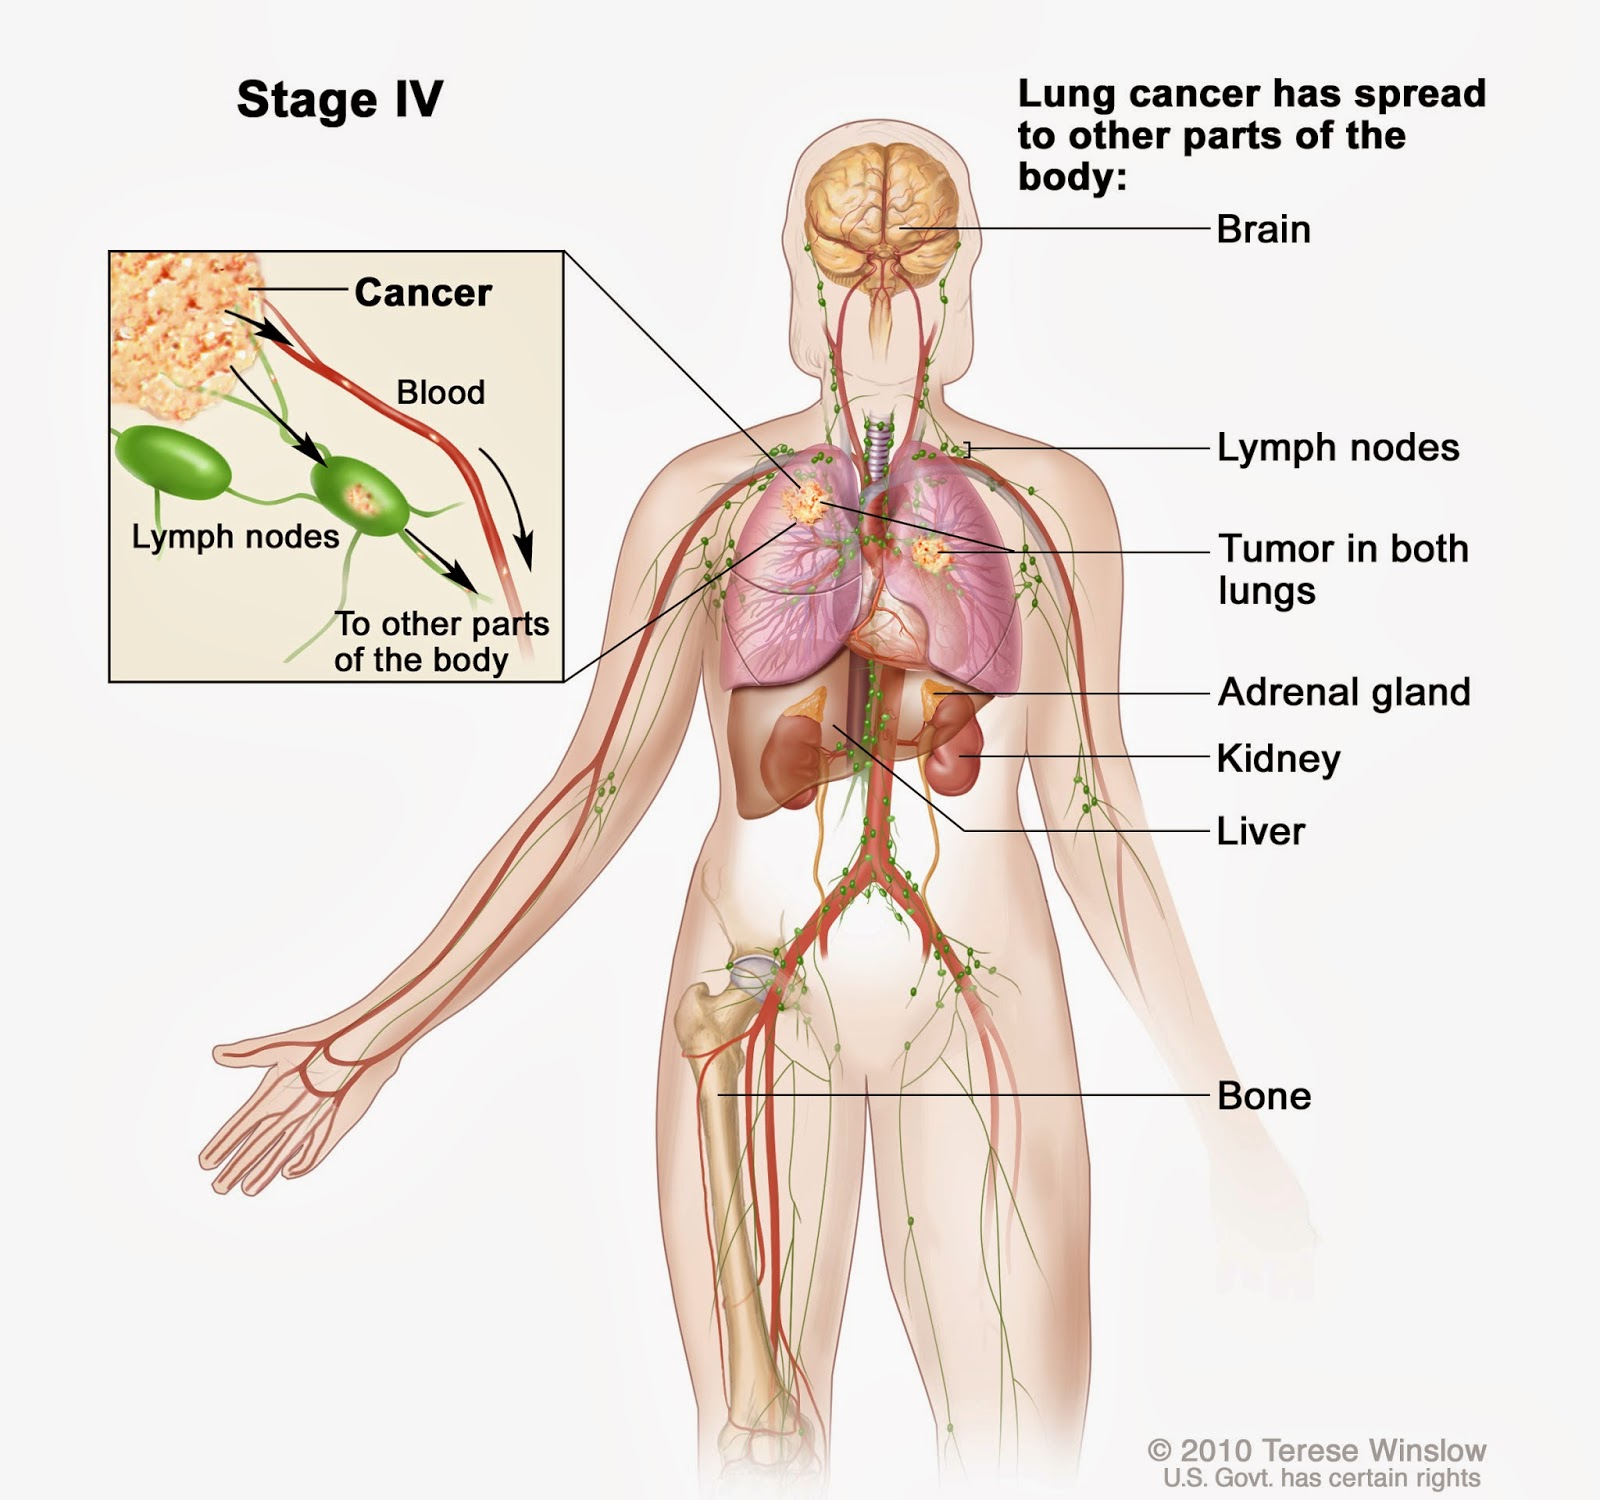 Lung Cancer Classification - What Is Stage IV?